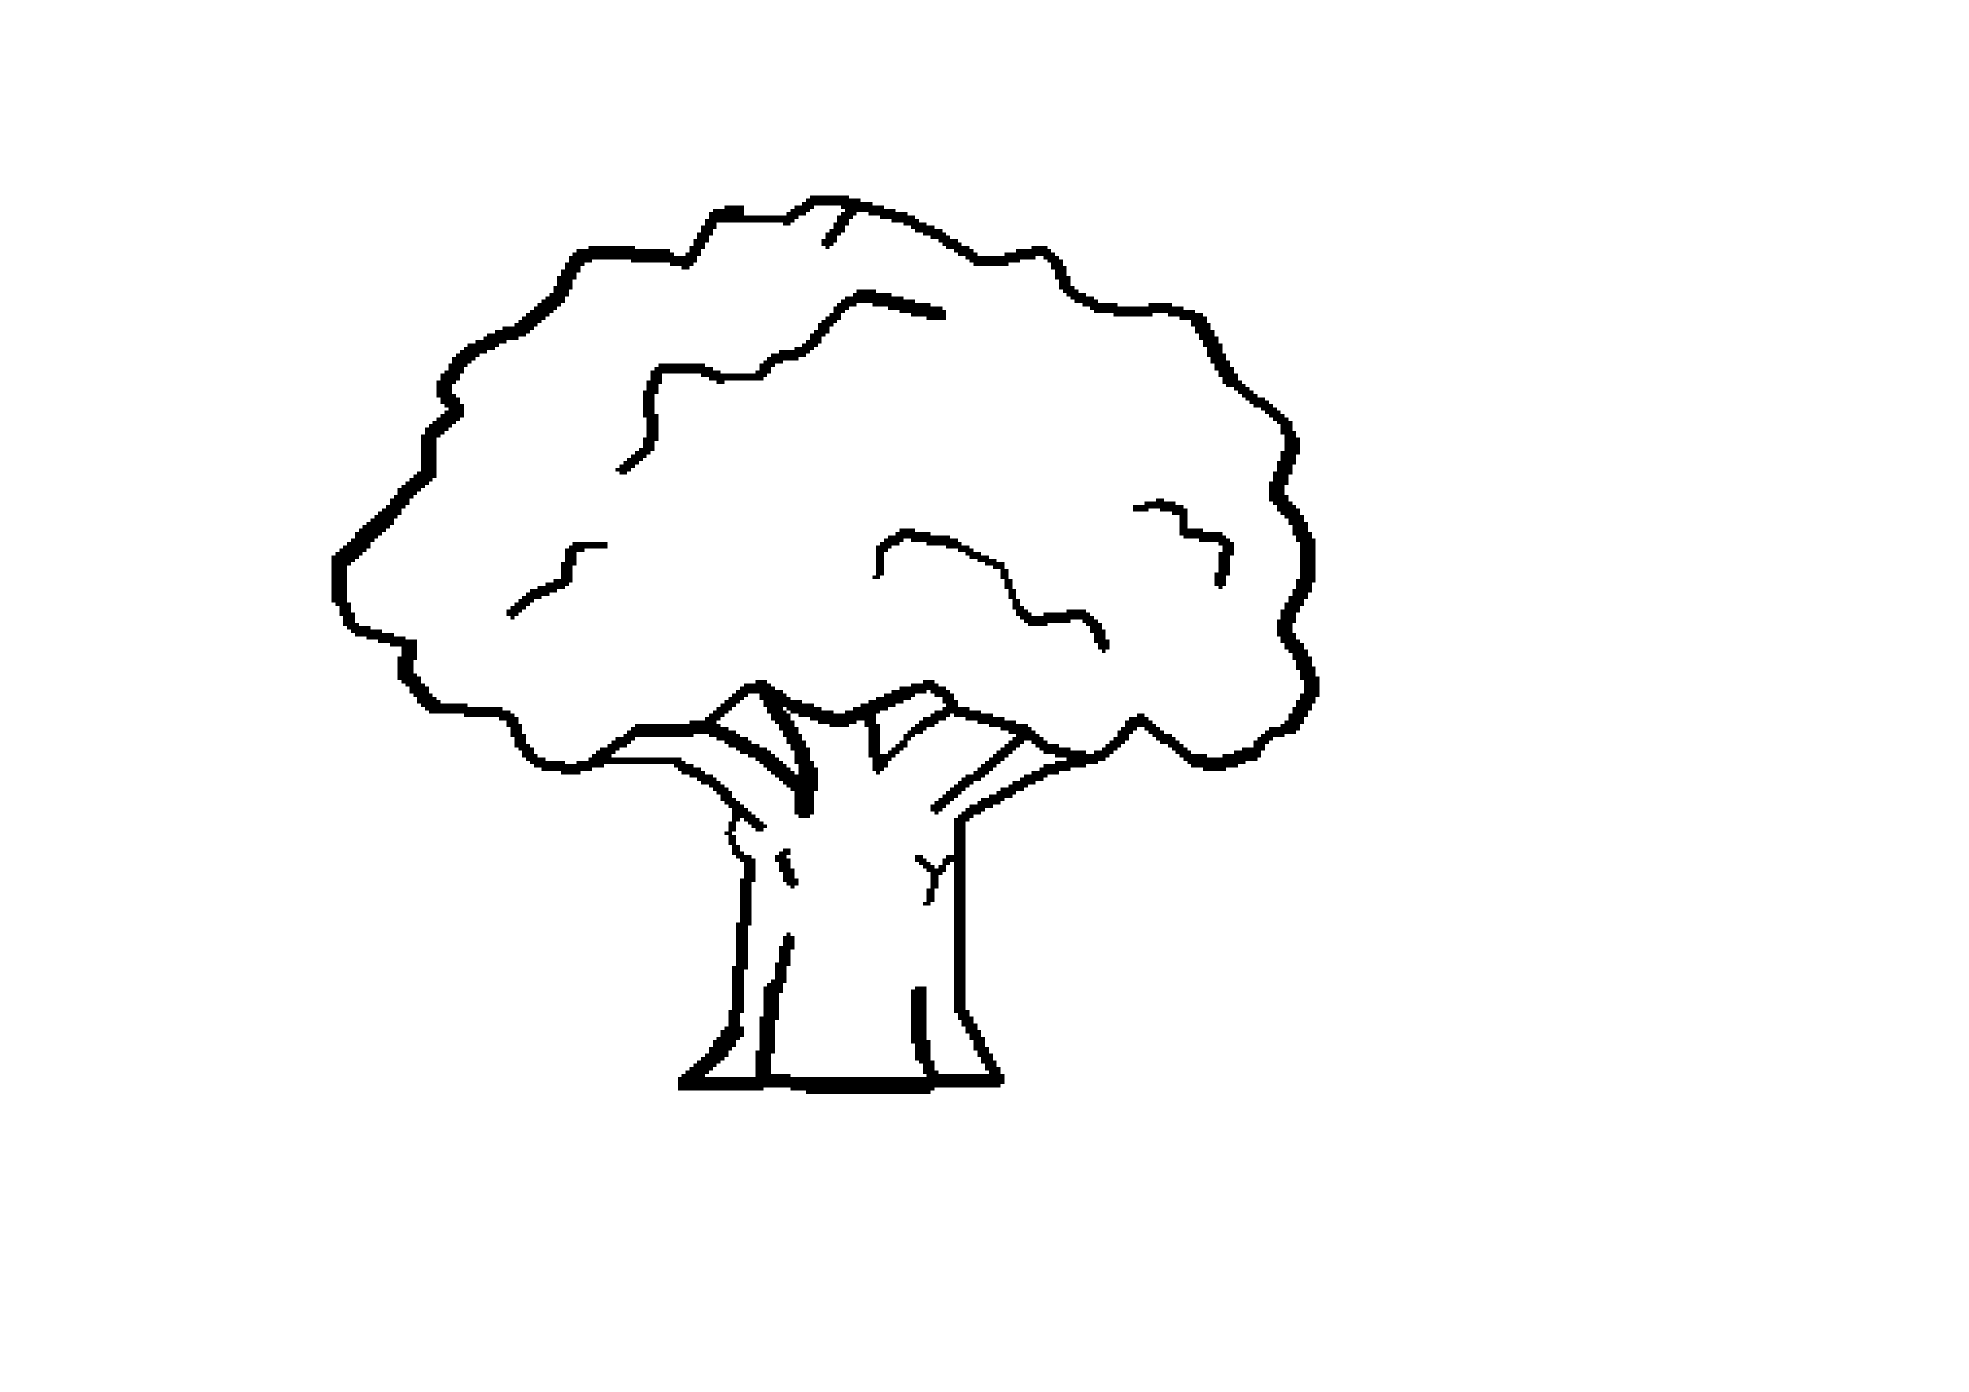 Free Tree Drawings Black And White Download Free Clip Art